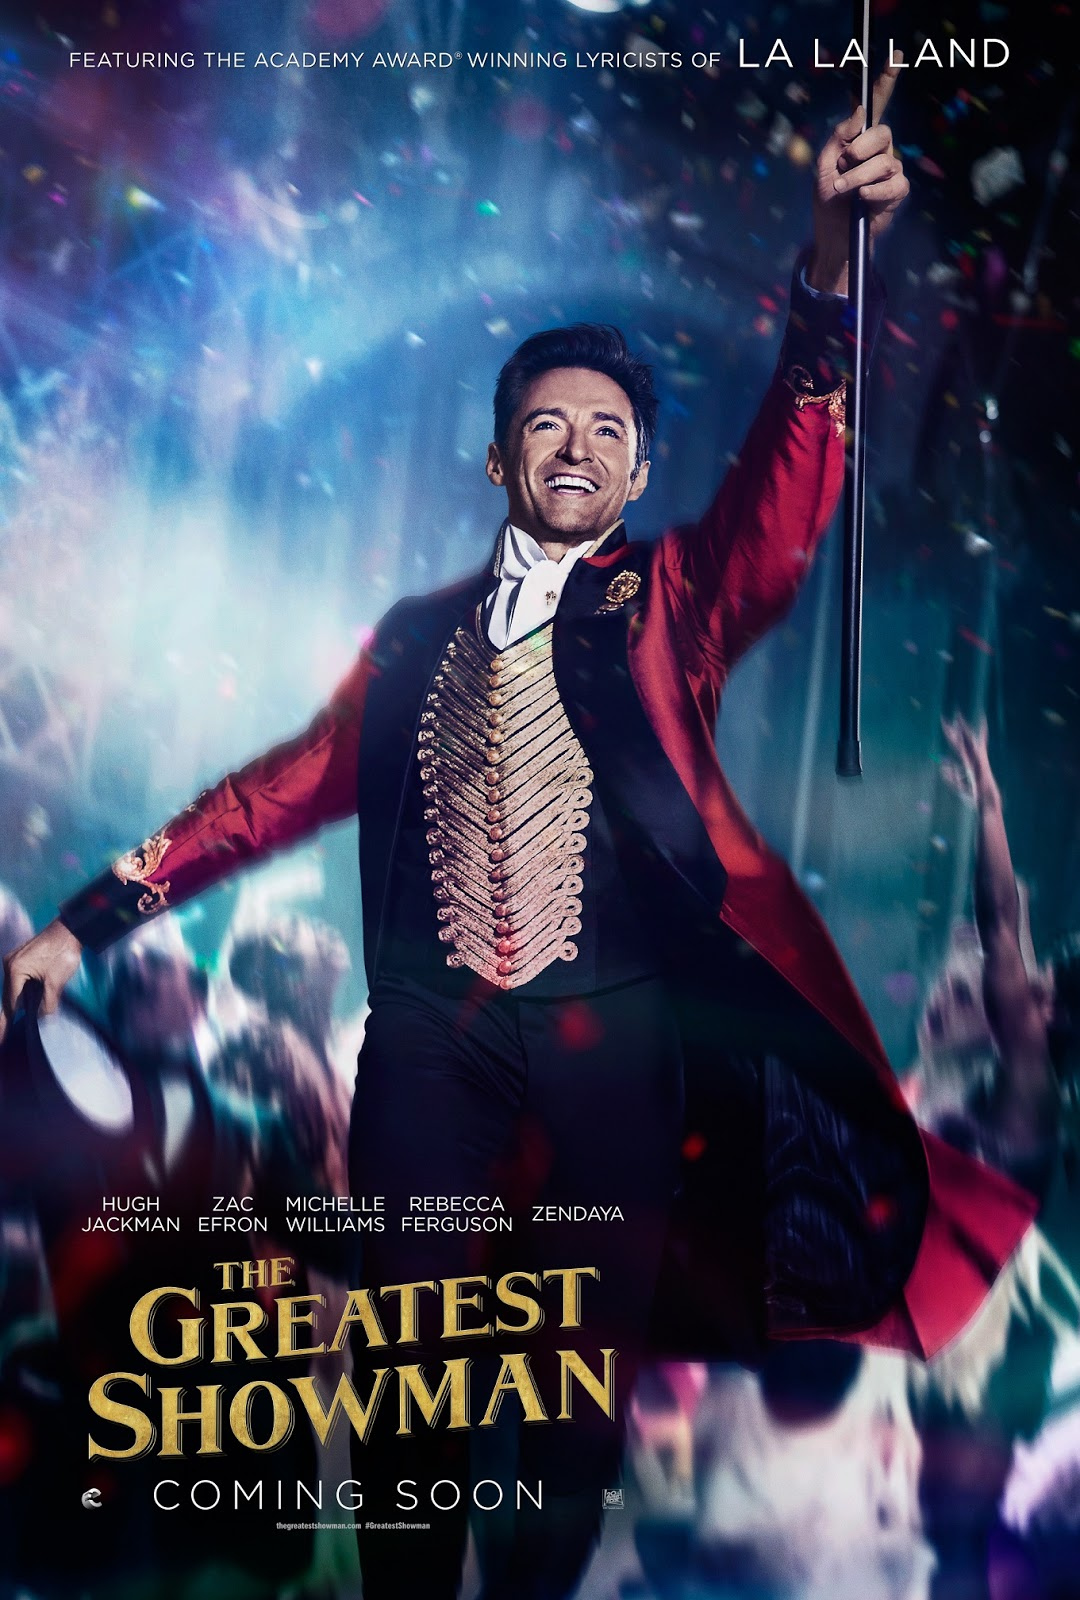 Off to a great spectacle with THE GREATEST SHOWMAN posters